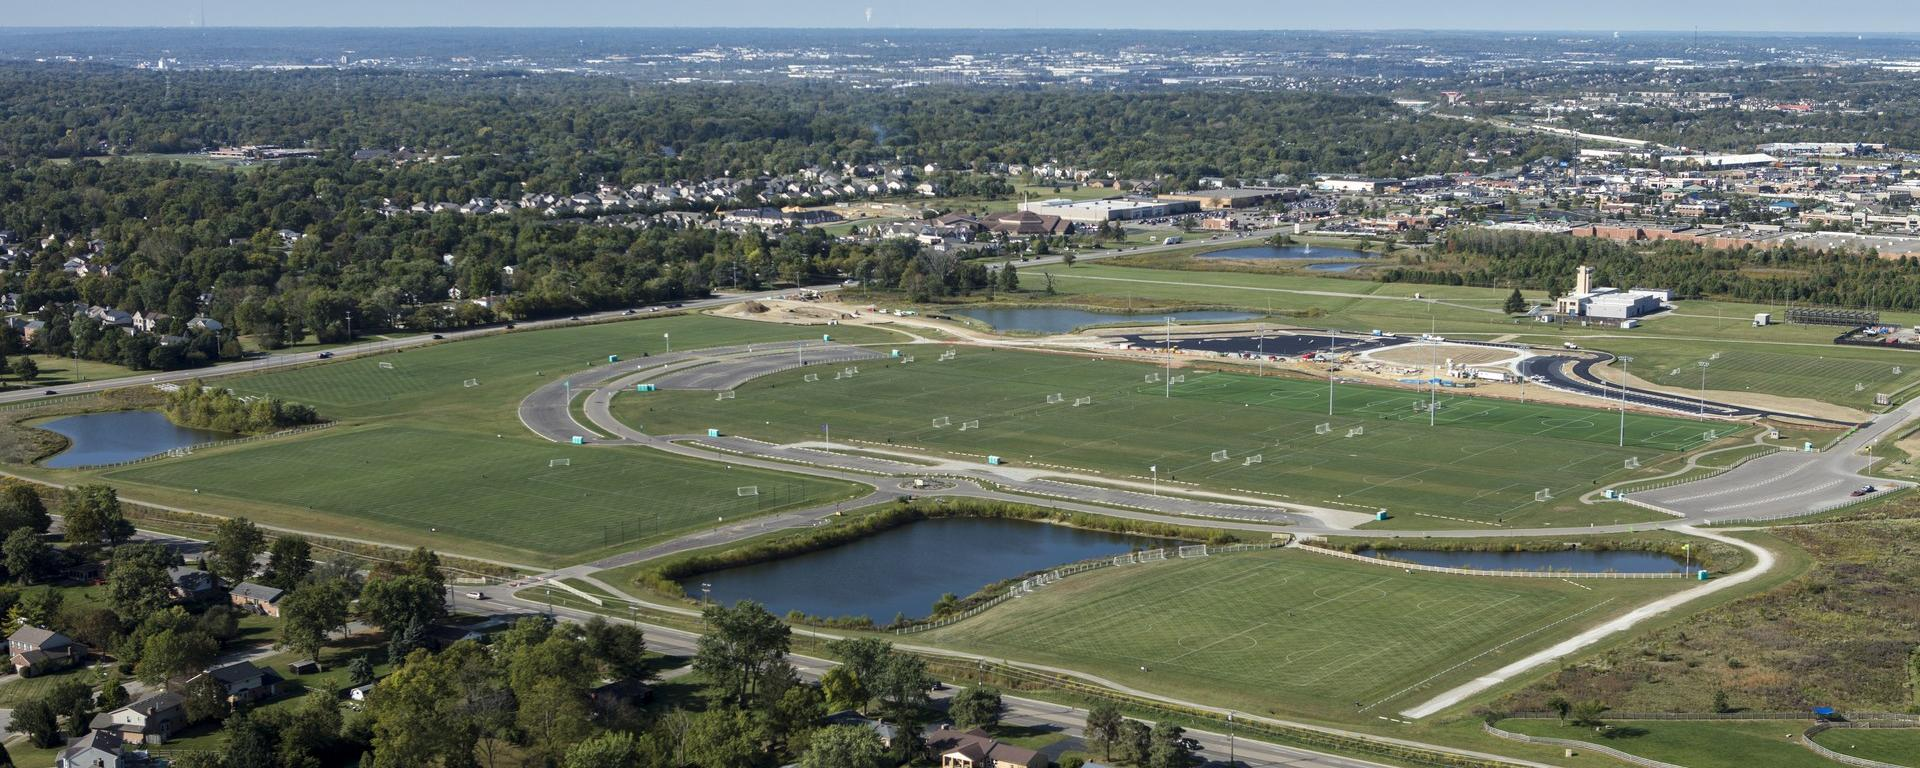 Voice of America Athletic Fields